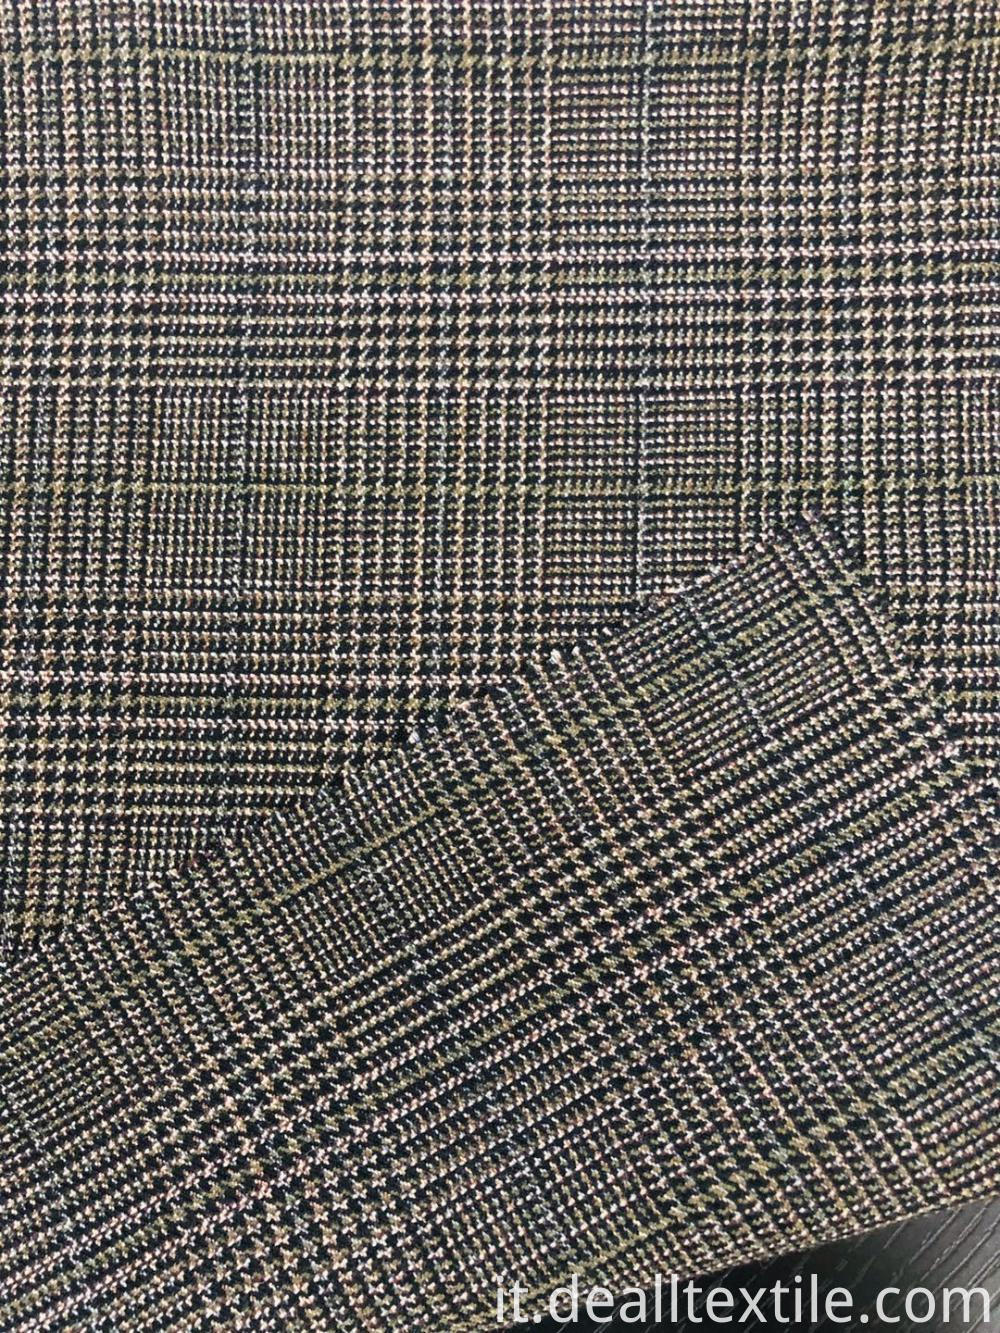 2020 women's check TR shirt fabric